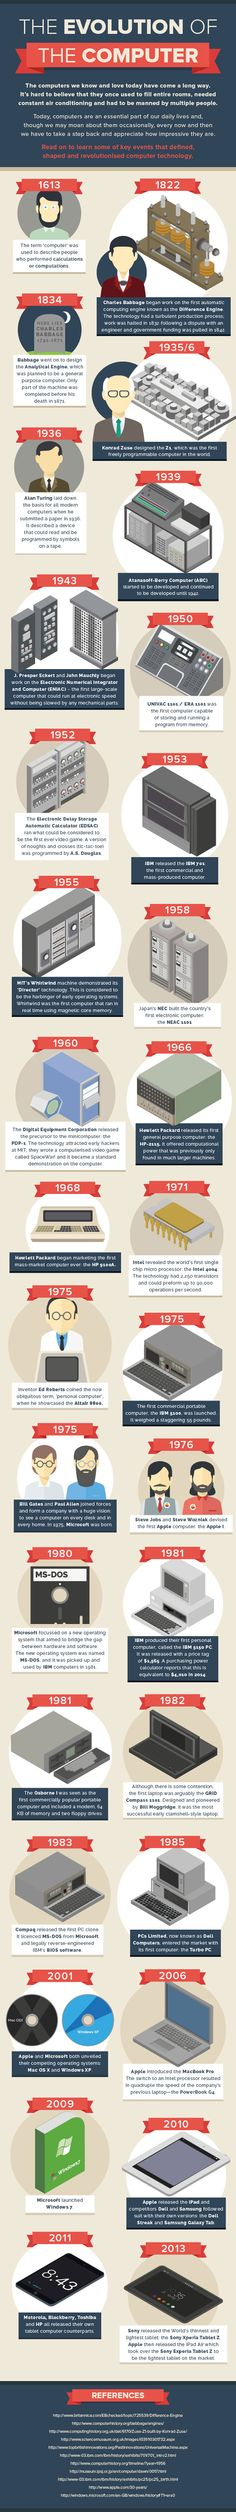 The evolution of the computer